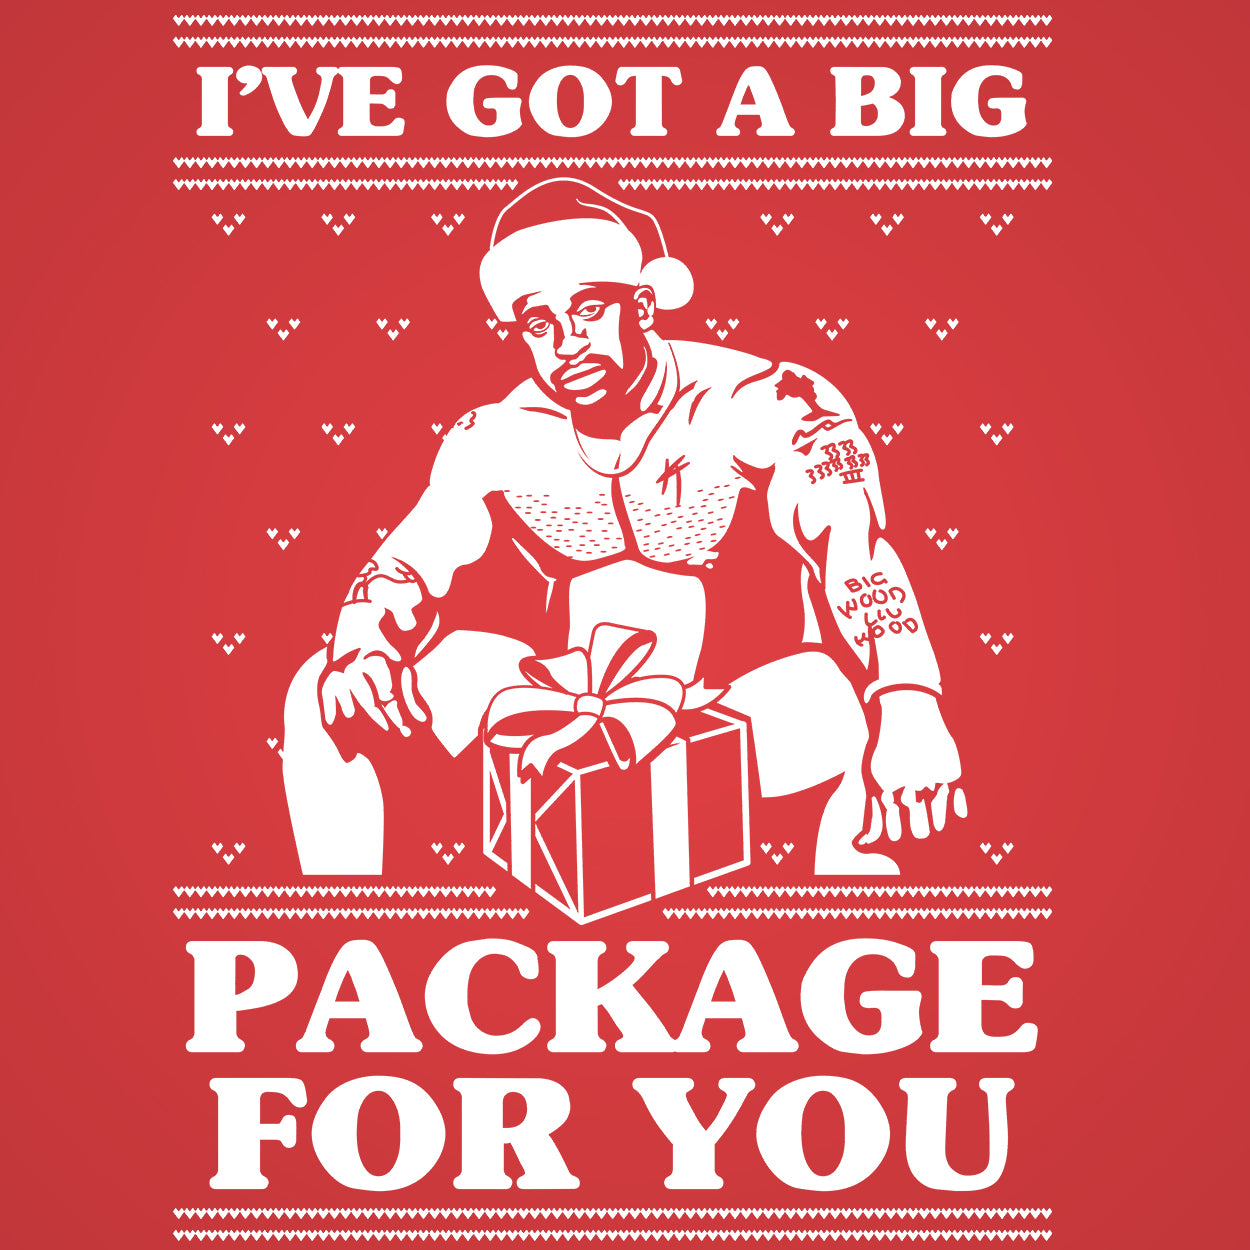 I've got a Big Package for you